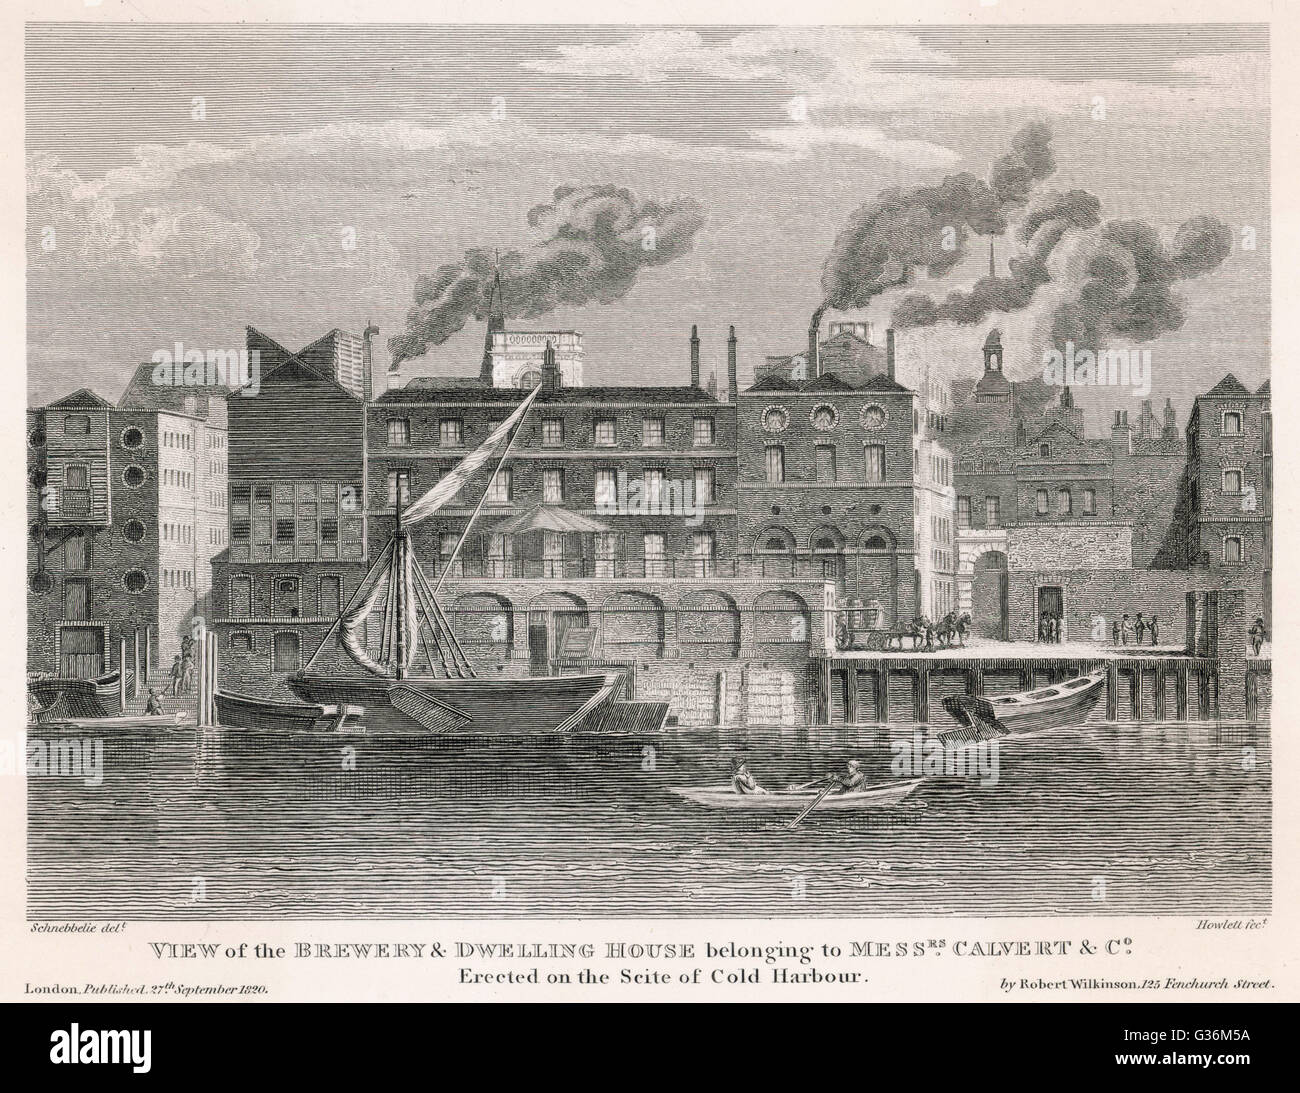 Calvert's Brewery, London  External view ; erected on the  site of Cold Harbour       Date: 1820 - Stock Image